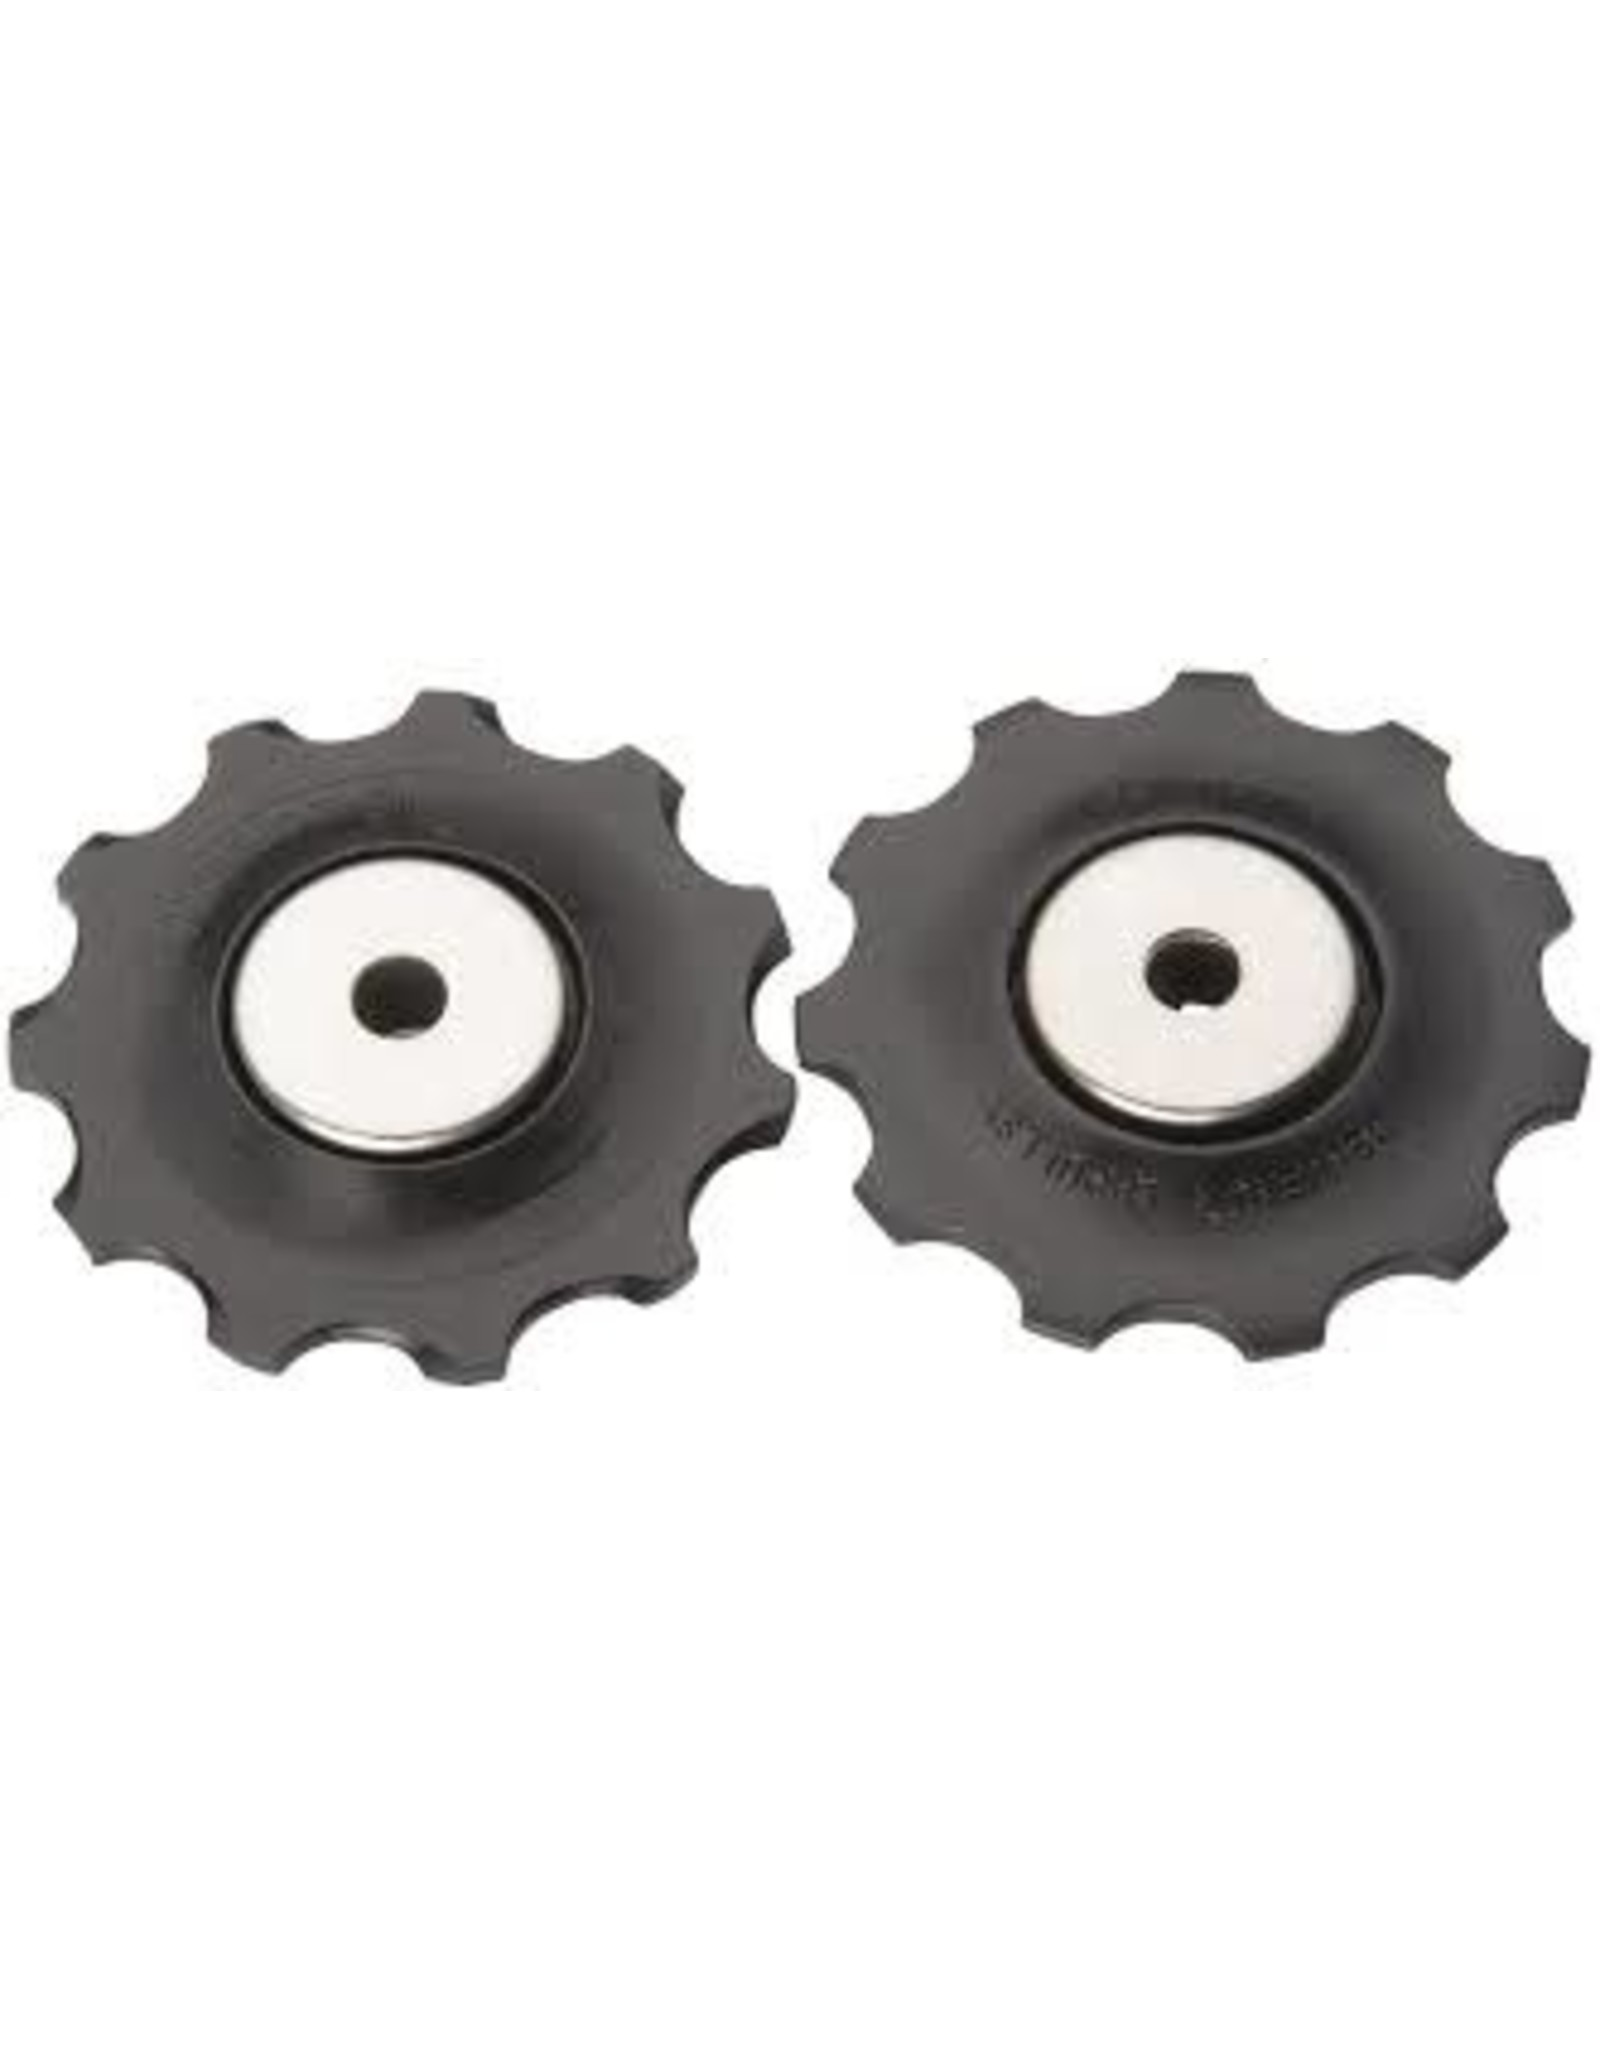 SHIMANO RD-5700 TENSION & GUIDE PULLEY SET